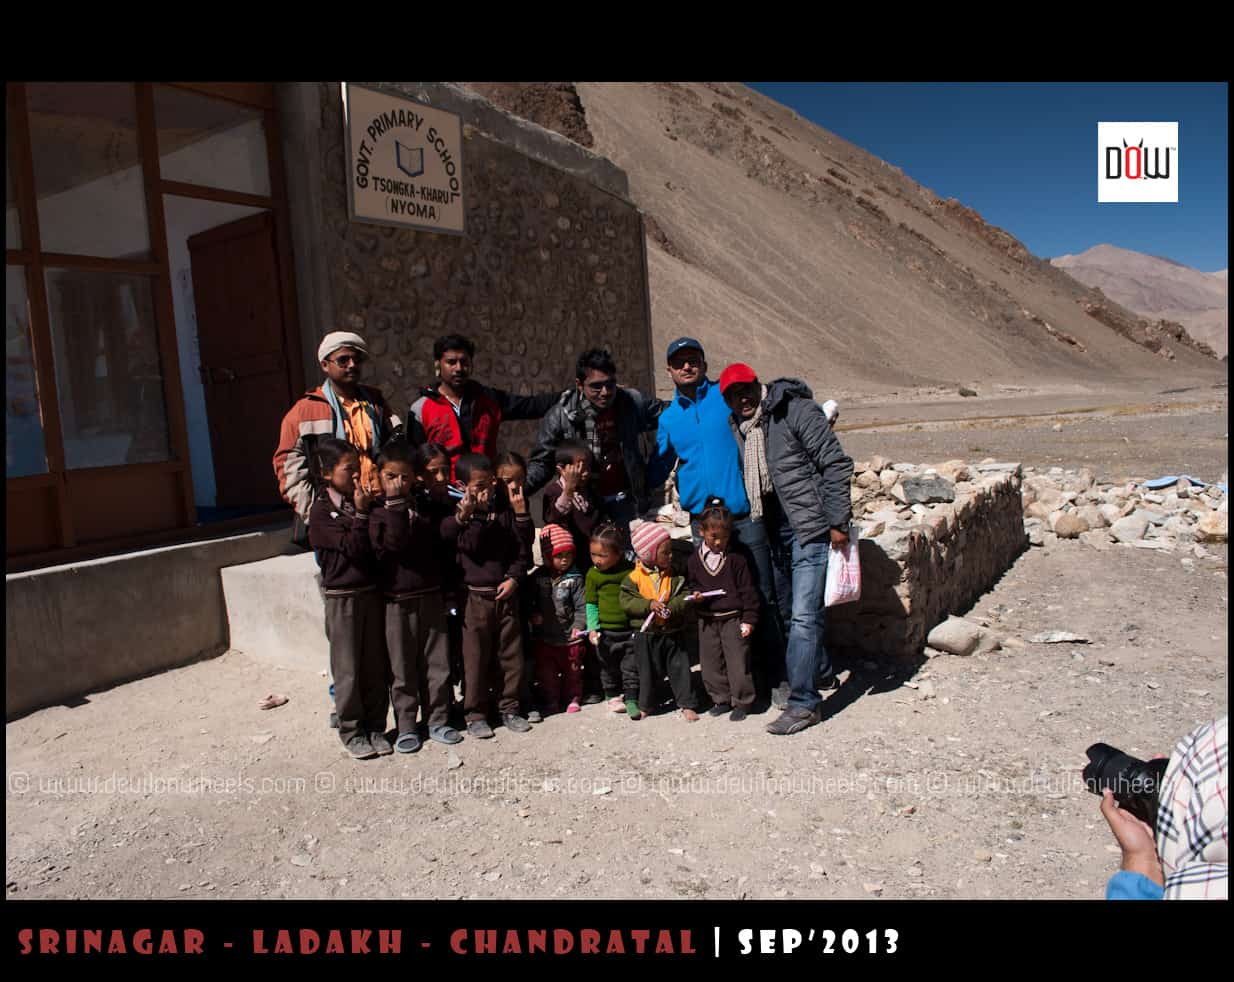 Devils Spreading Smiles at Nidar, Nyoma in Ladakh